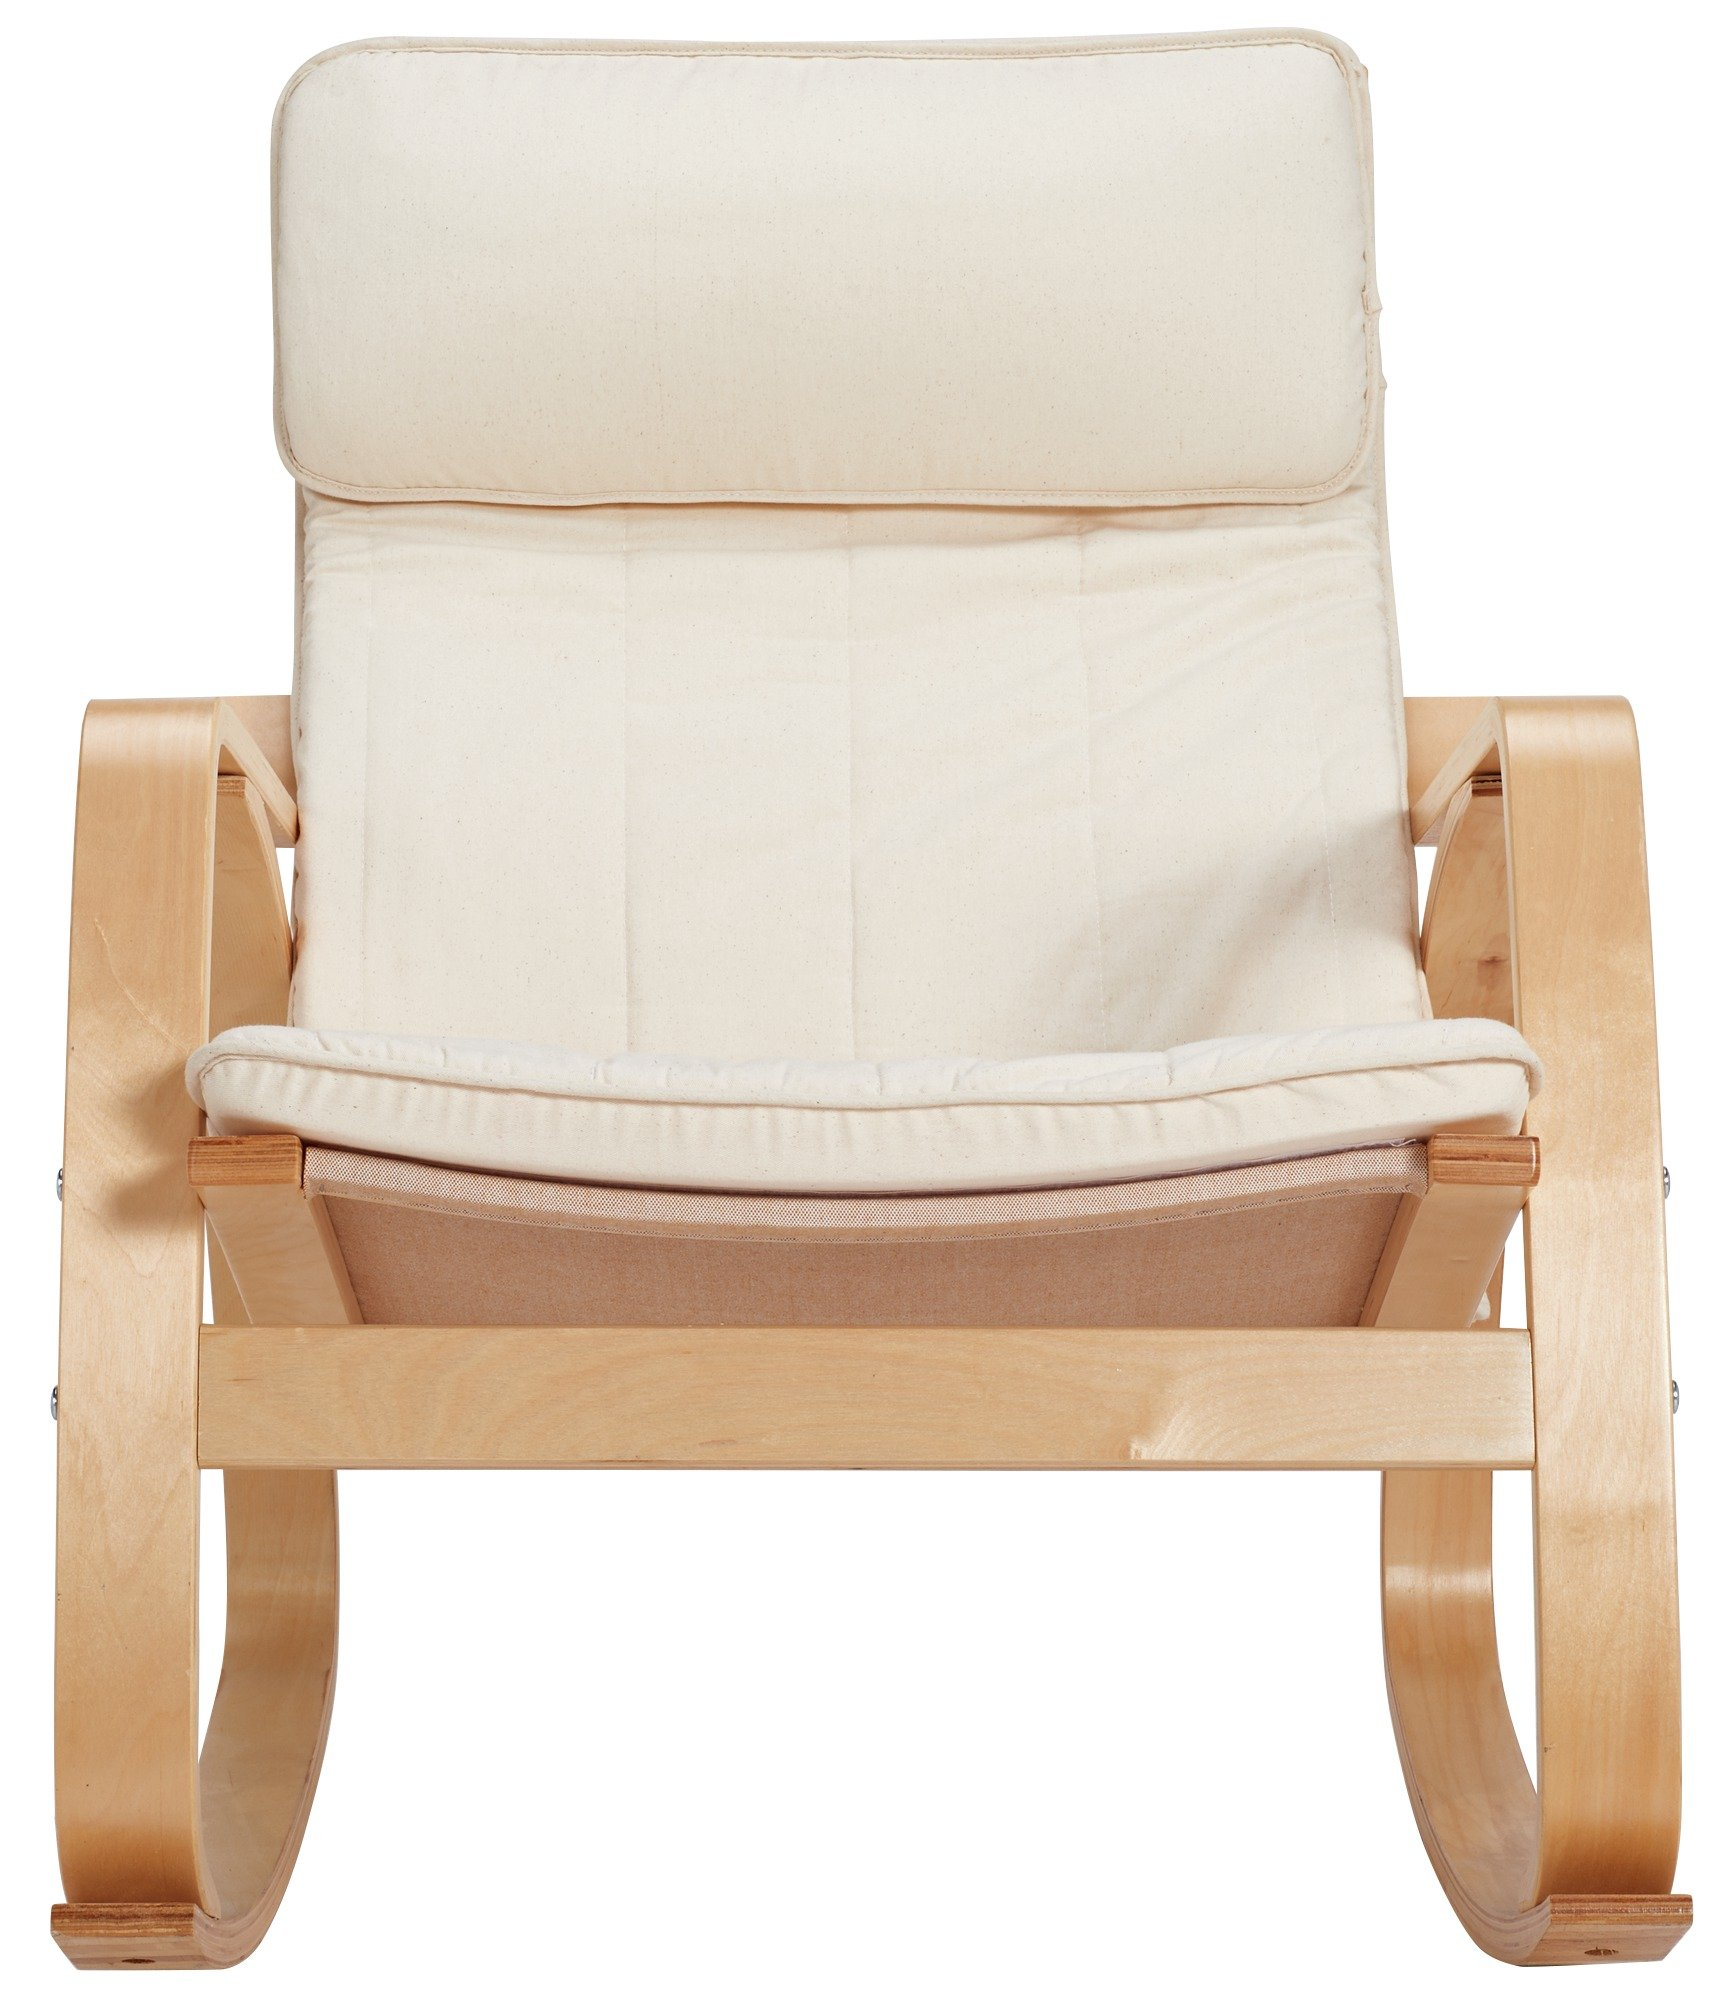 Home Rocking Chair Natural